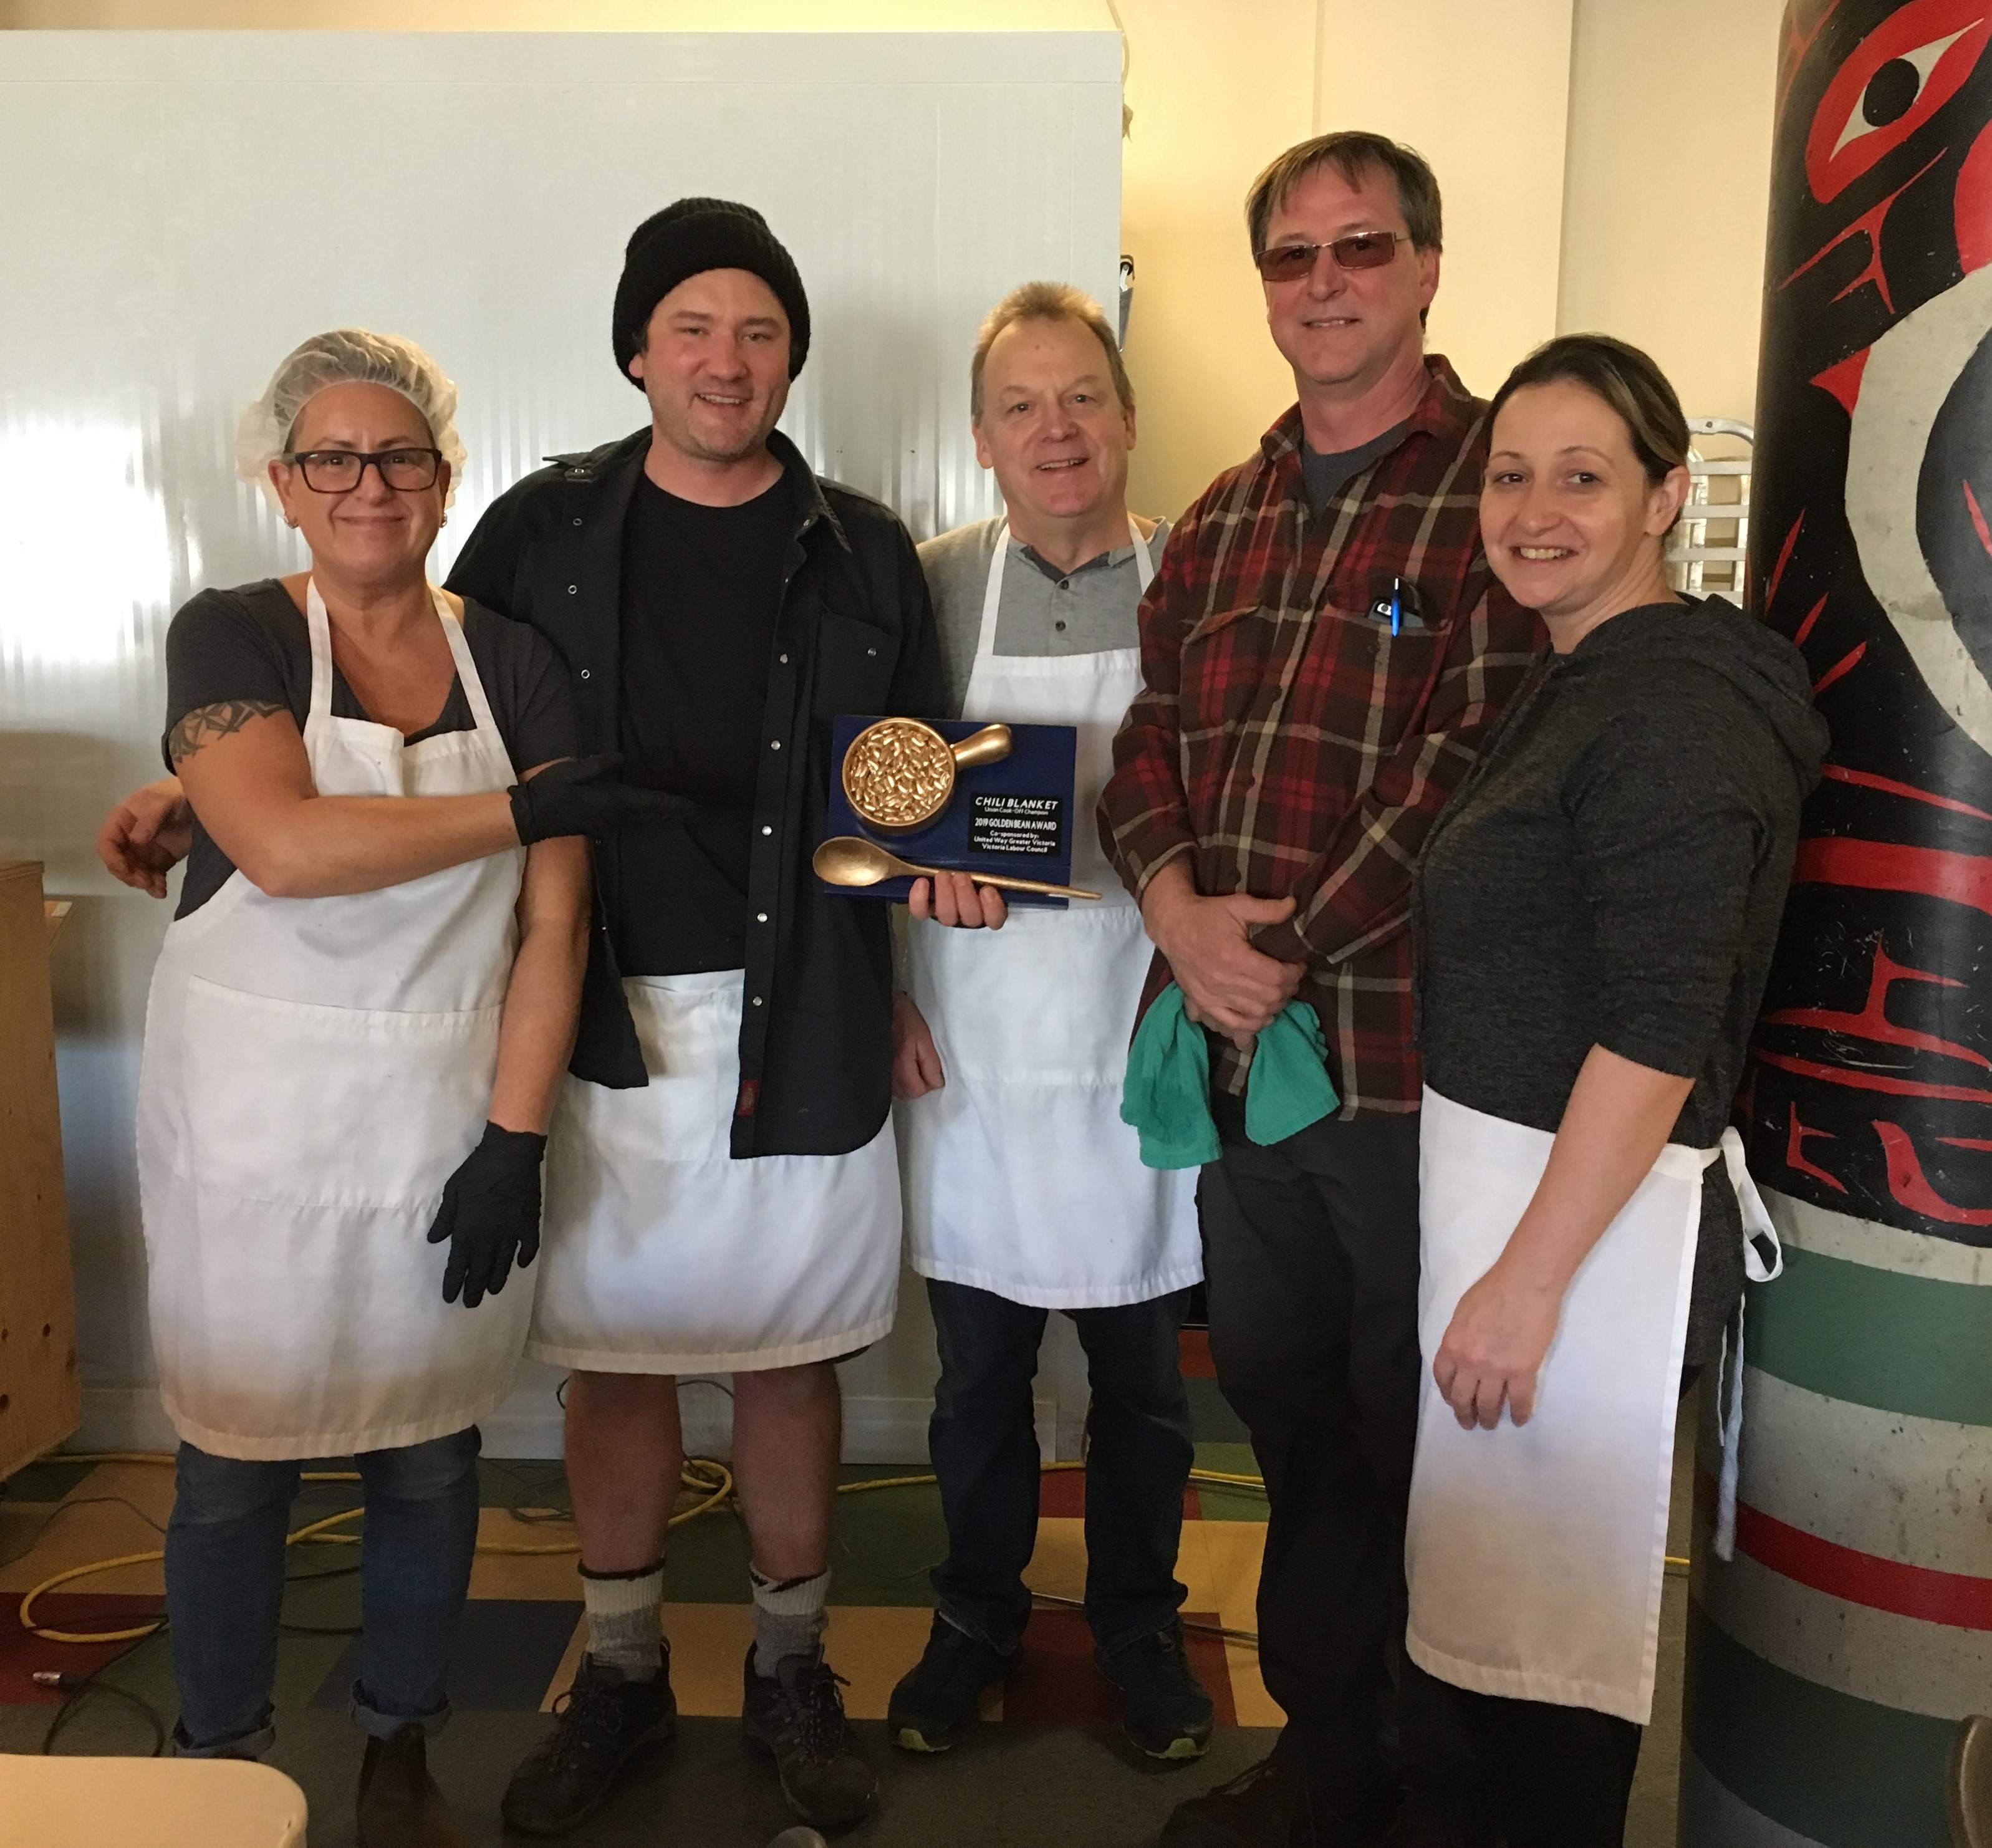 And the Golden Bean goes to…CUPE 917! Chili champions, pictured left to right are Jodi Mclean, Nick Vagvolgyi, Brad Lockwood, Claude Champagne and Rosalyn Silletta.